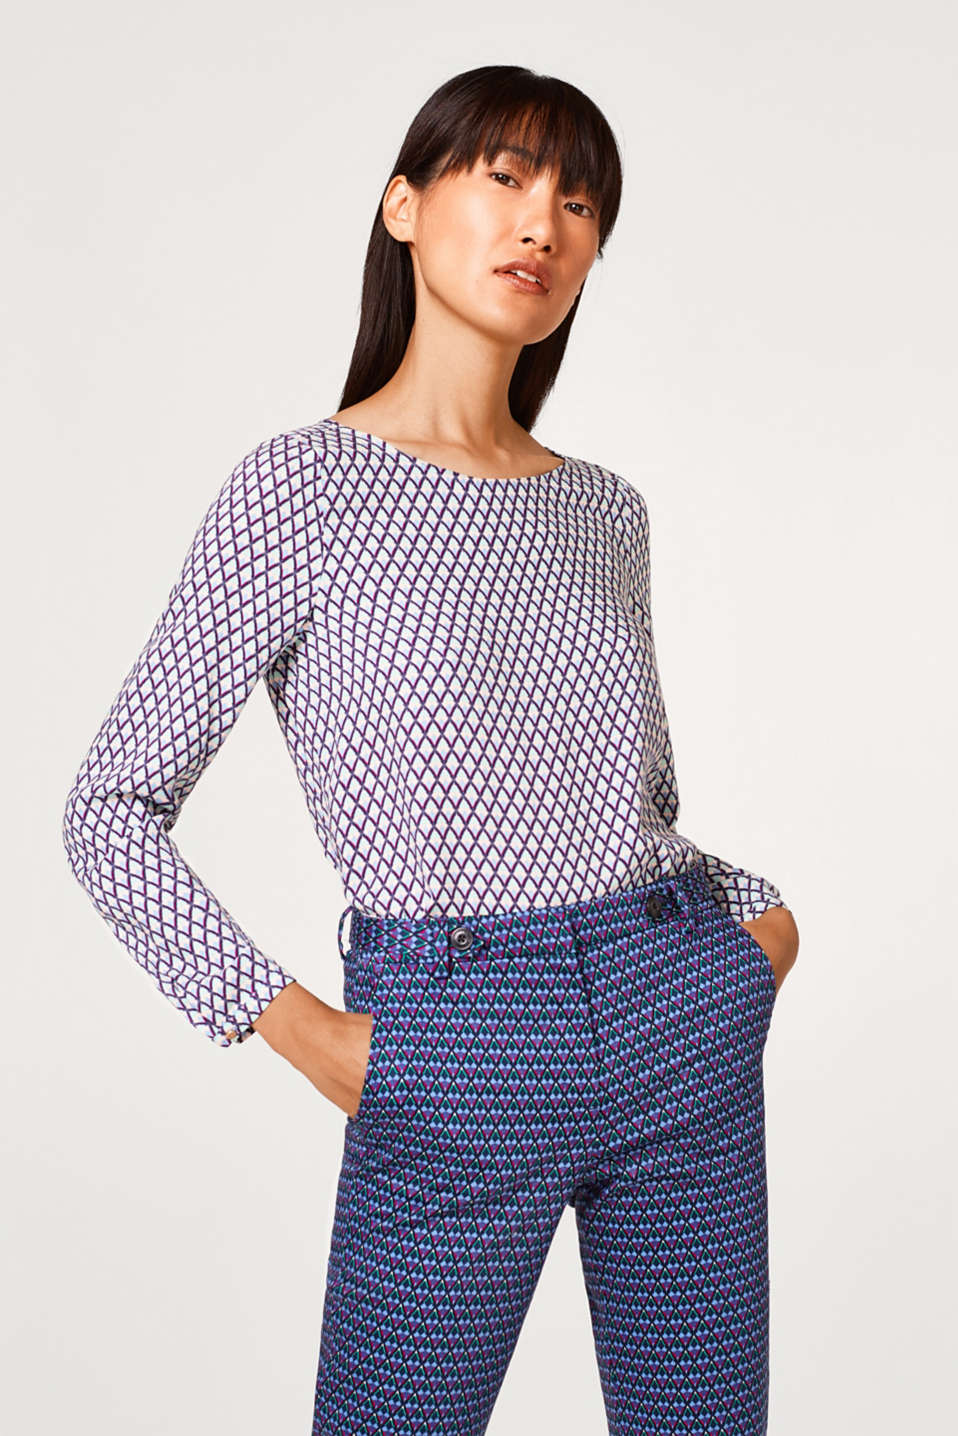 Esprit - Flowing blouse with a geometric print and button placket